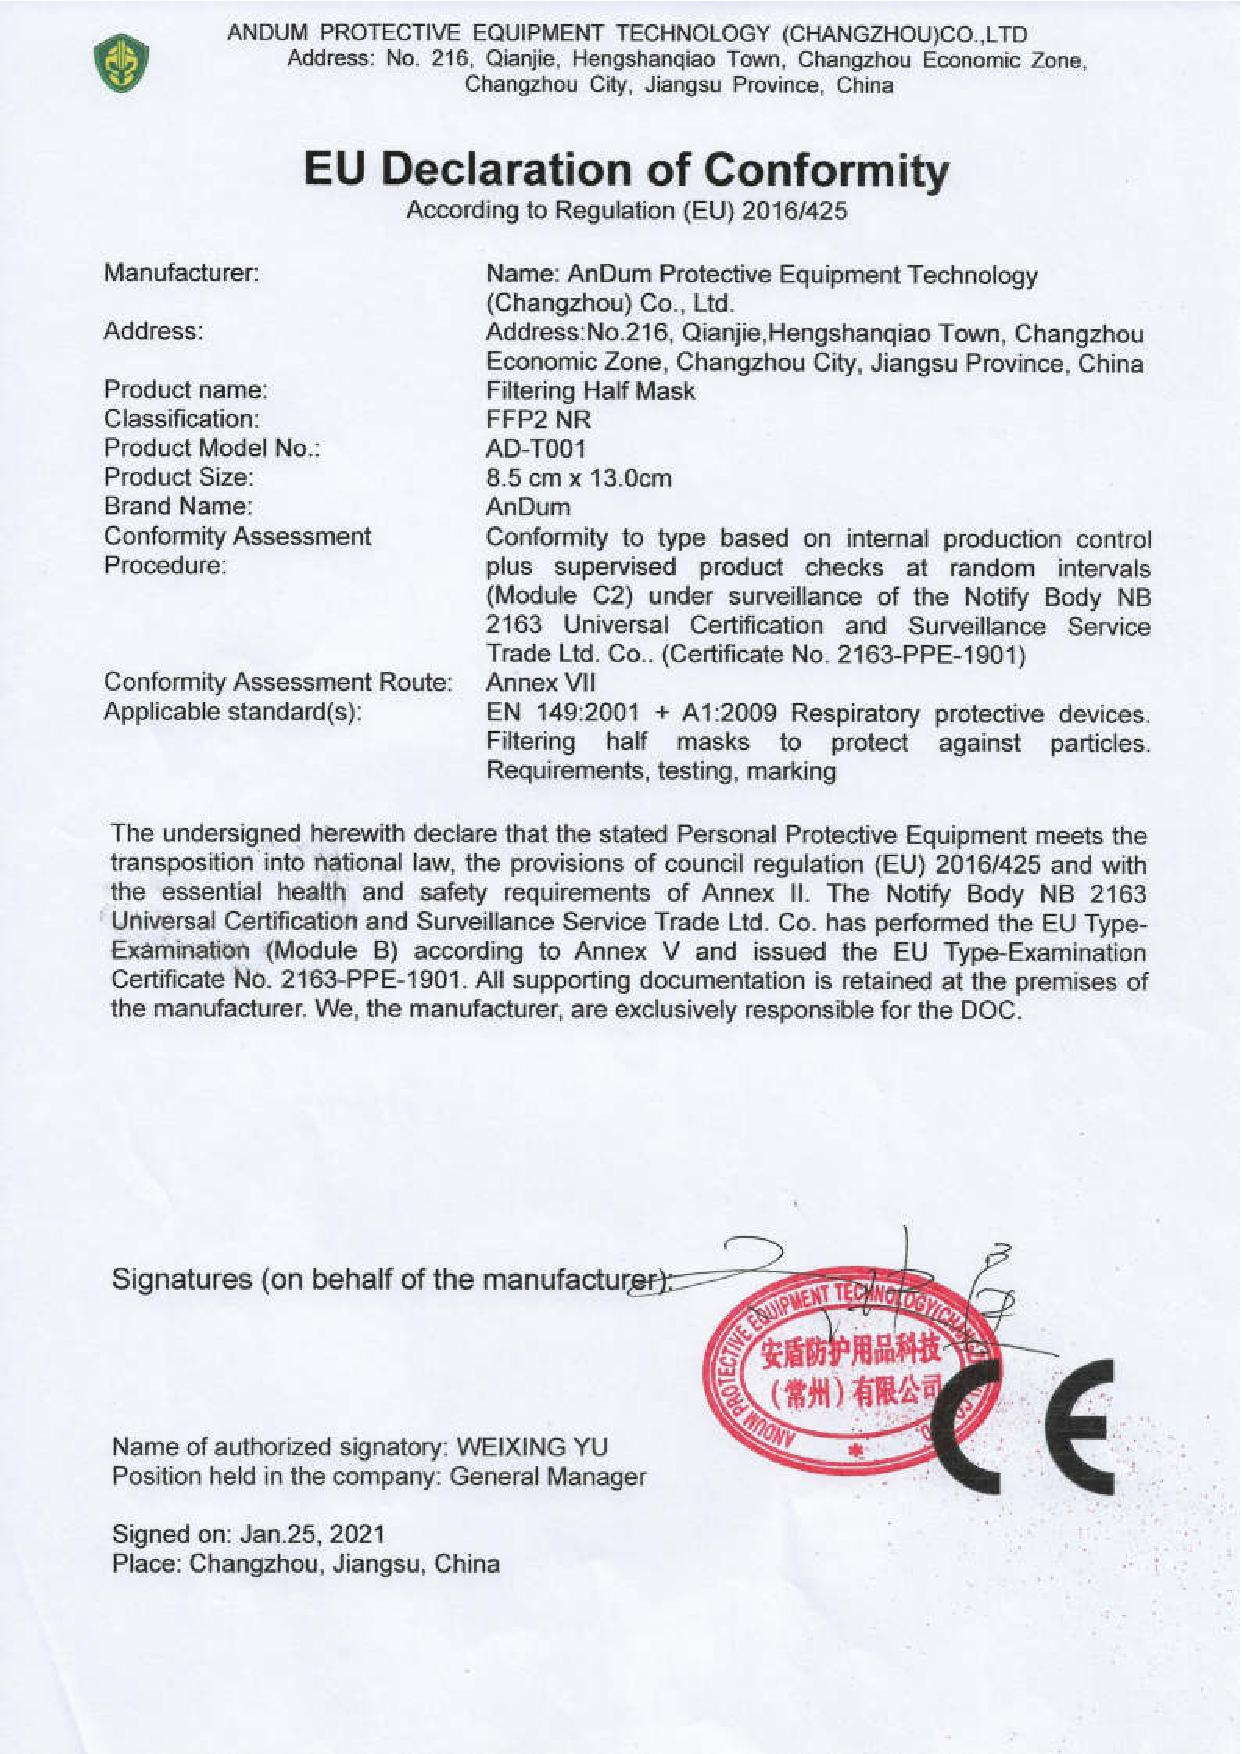 AnDum_DOC_AD-T001-page-001.jpg